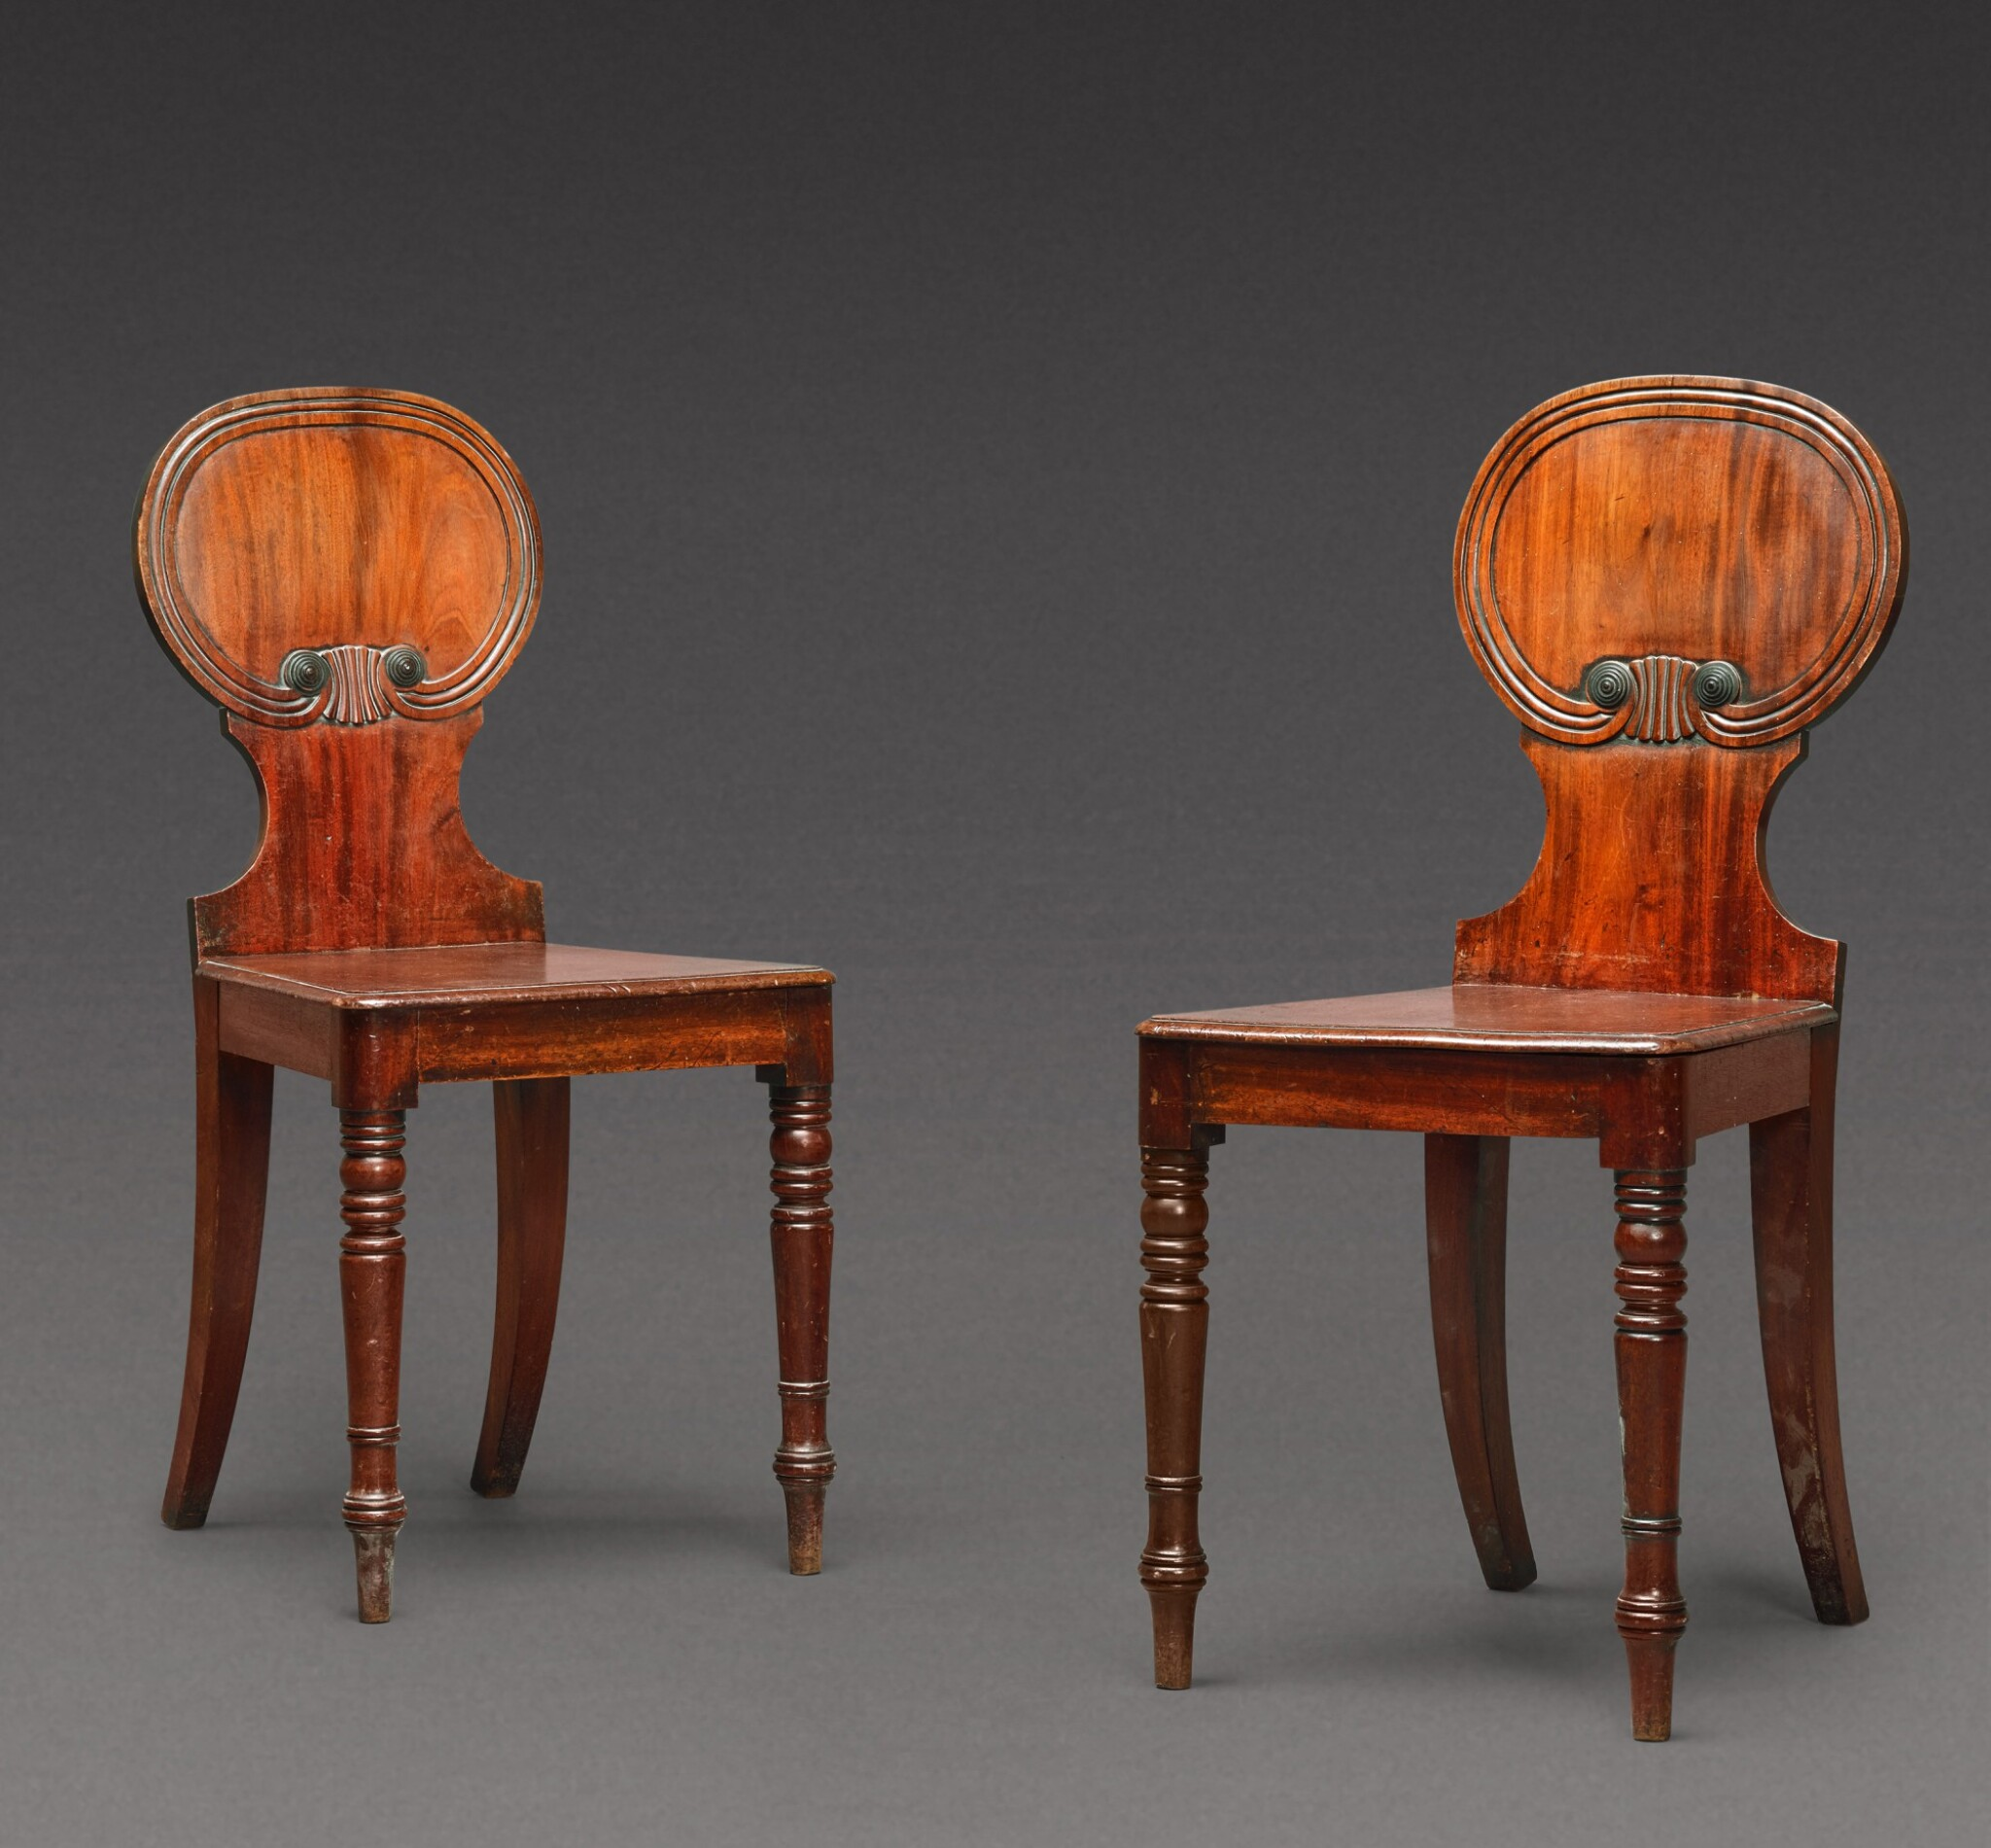 View 1 of Lot 169. A pair of George IV mahogany hall chairs, circa 1825.